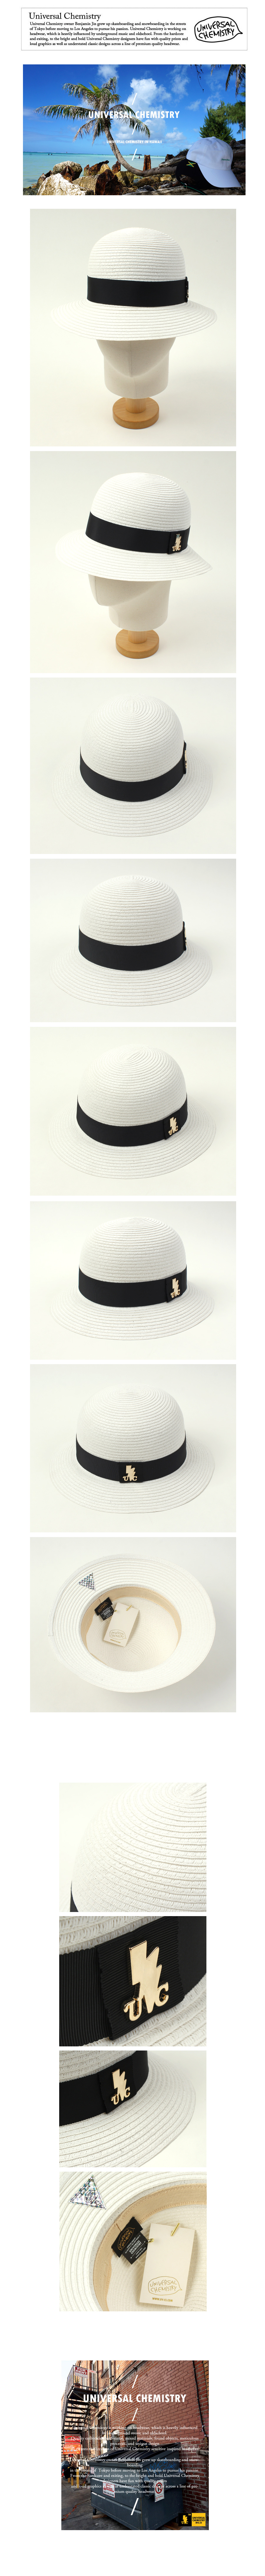 Summer White Cloche Hat 섬머클로슈햇